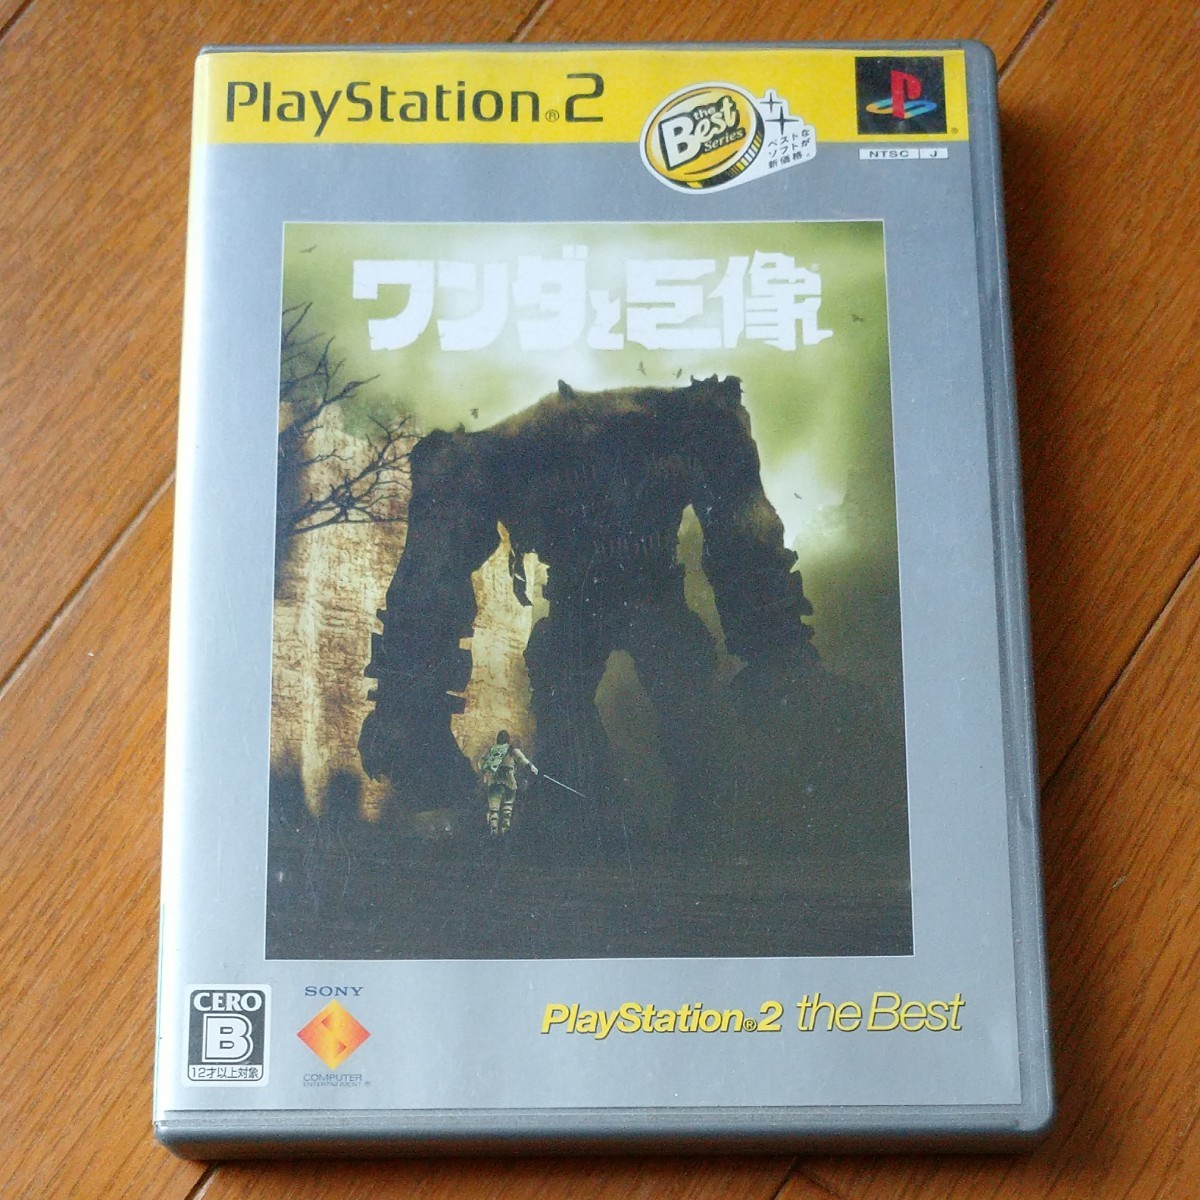 【PS2】 ワンダと巨像 [PlayStation 2 the Best]